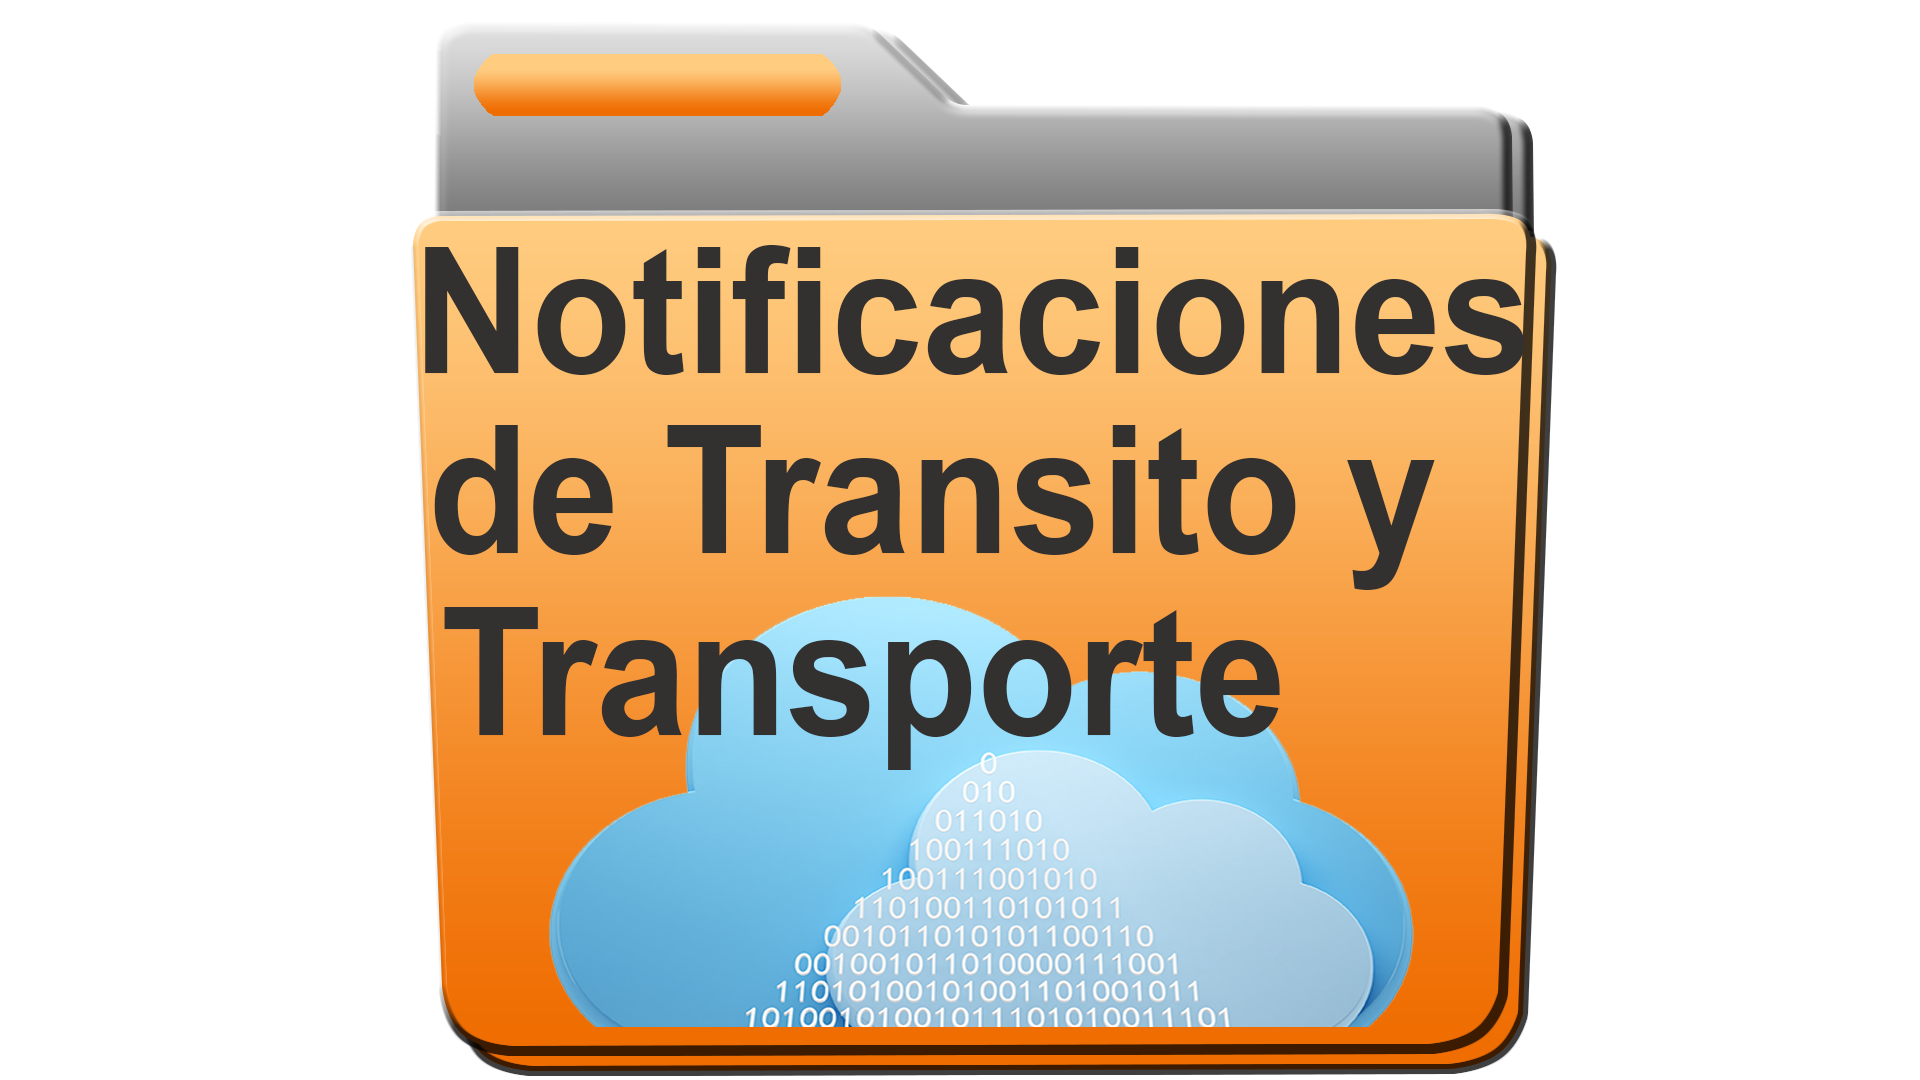 NotificacionesDeTransito